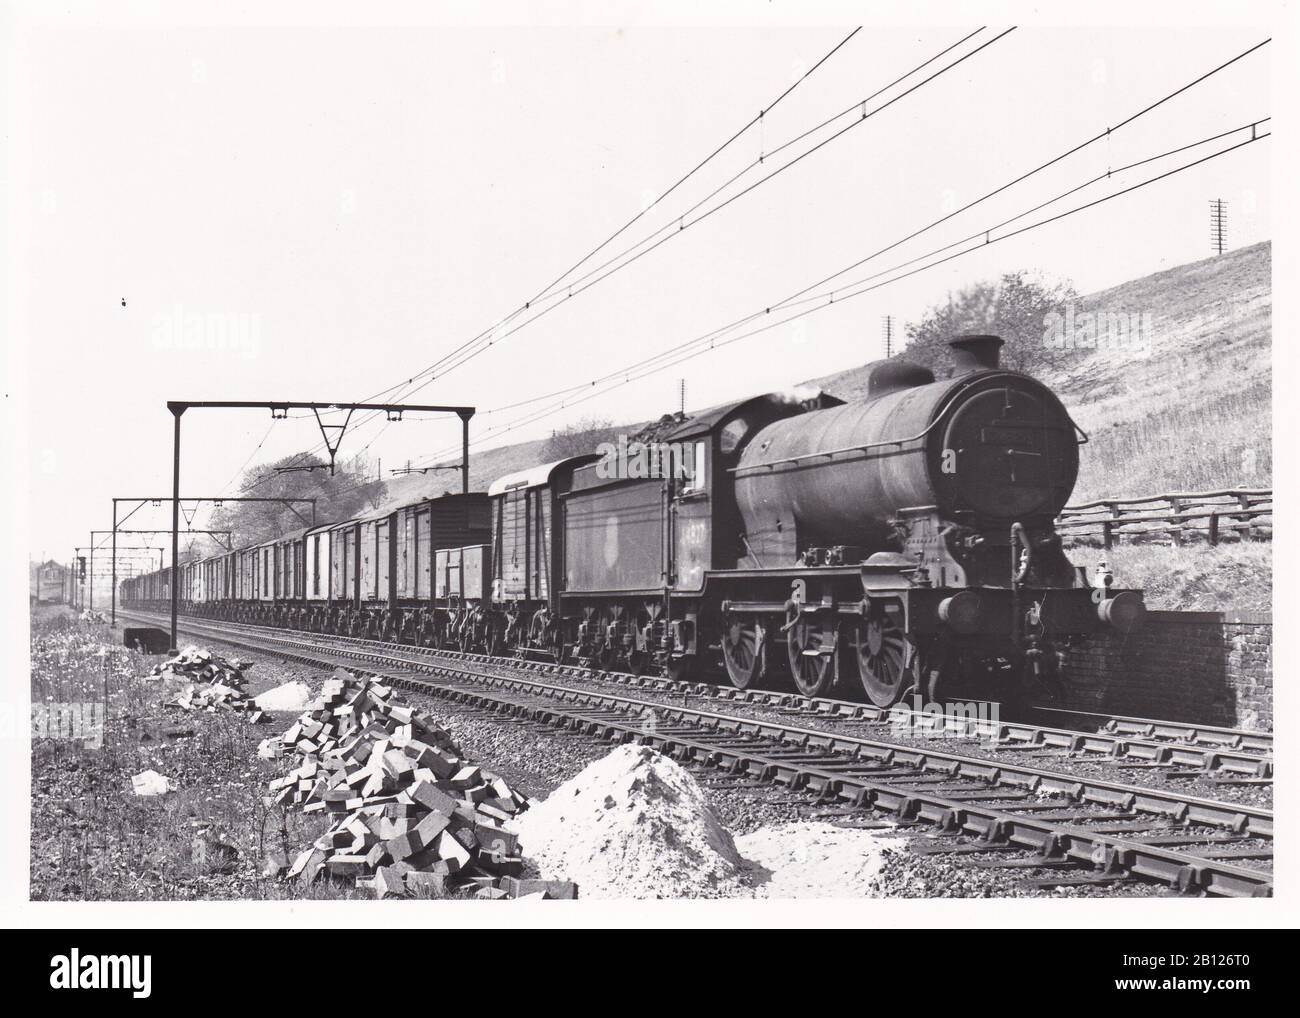 Vintage Black And White Photo Of Steam Locomotive Train E R Class J39 0 6 0 64827 On An Up Freight Passing Godley East Junction May 1954 Stock Photo Alamy